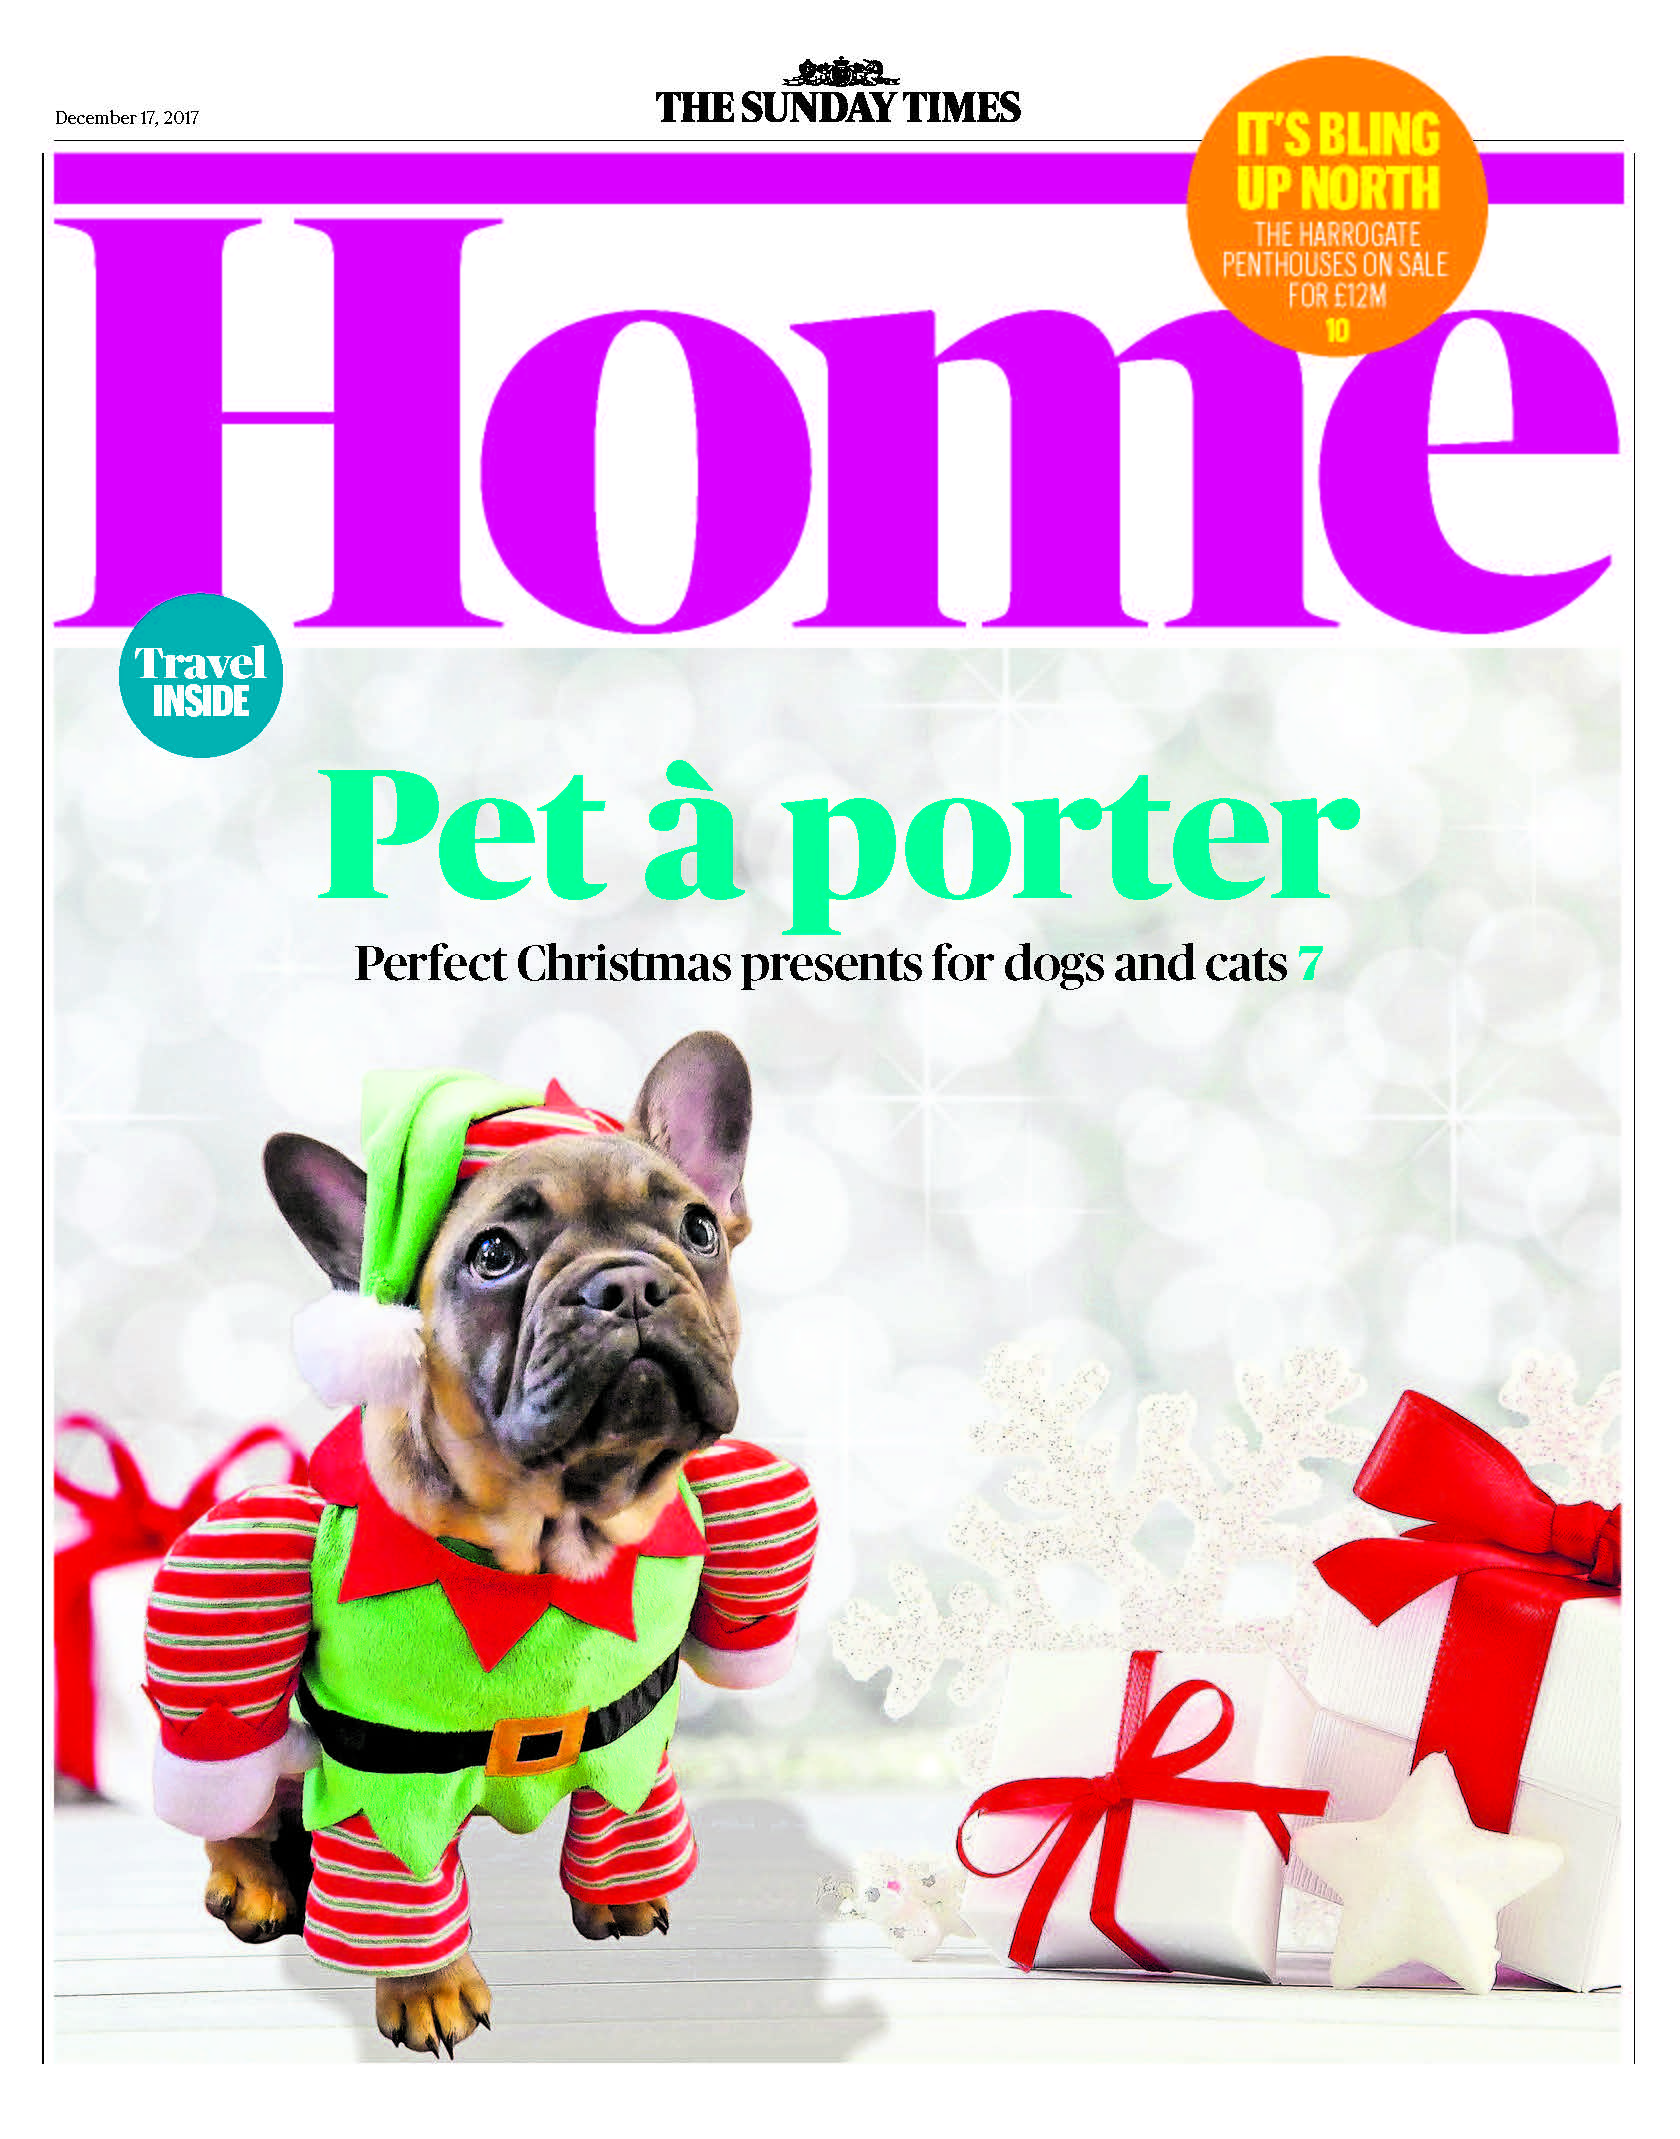 dog, dogs, style, magazine, press, editorial, home, sunday times